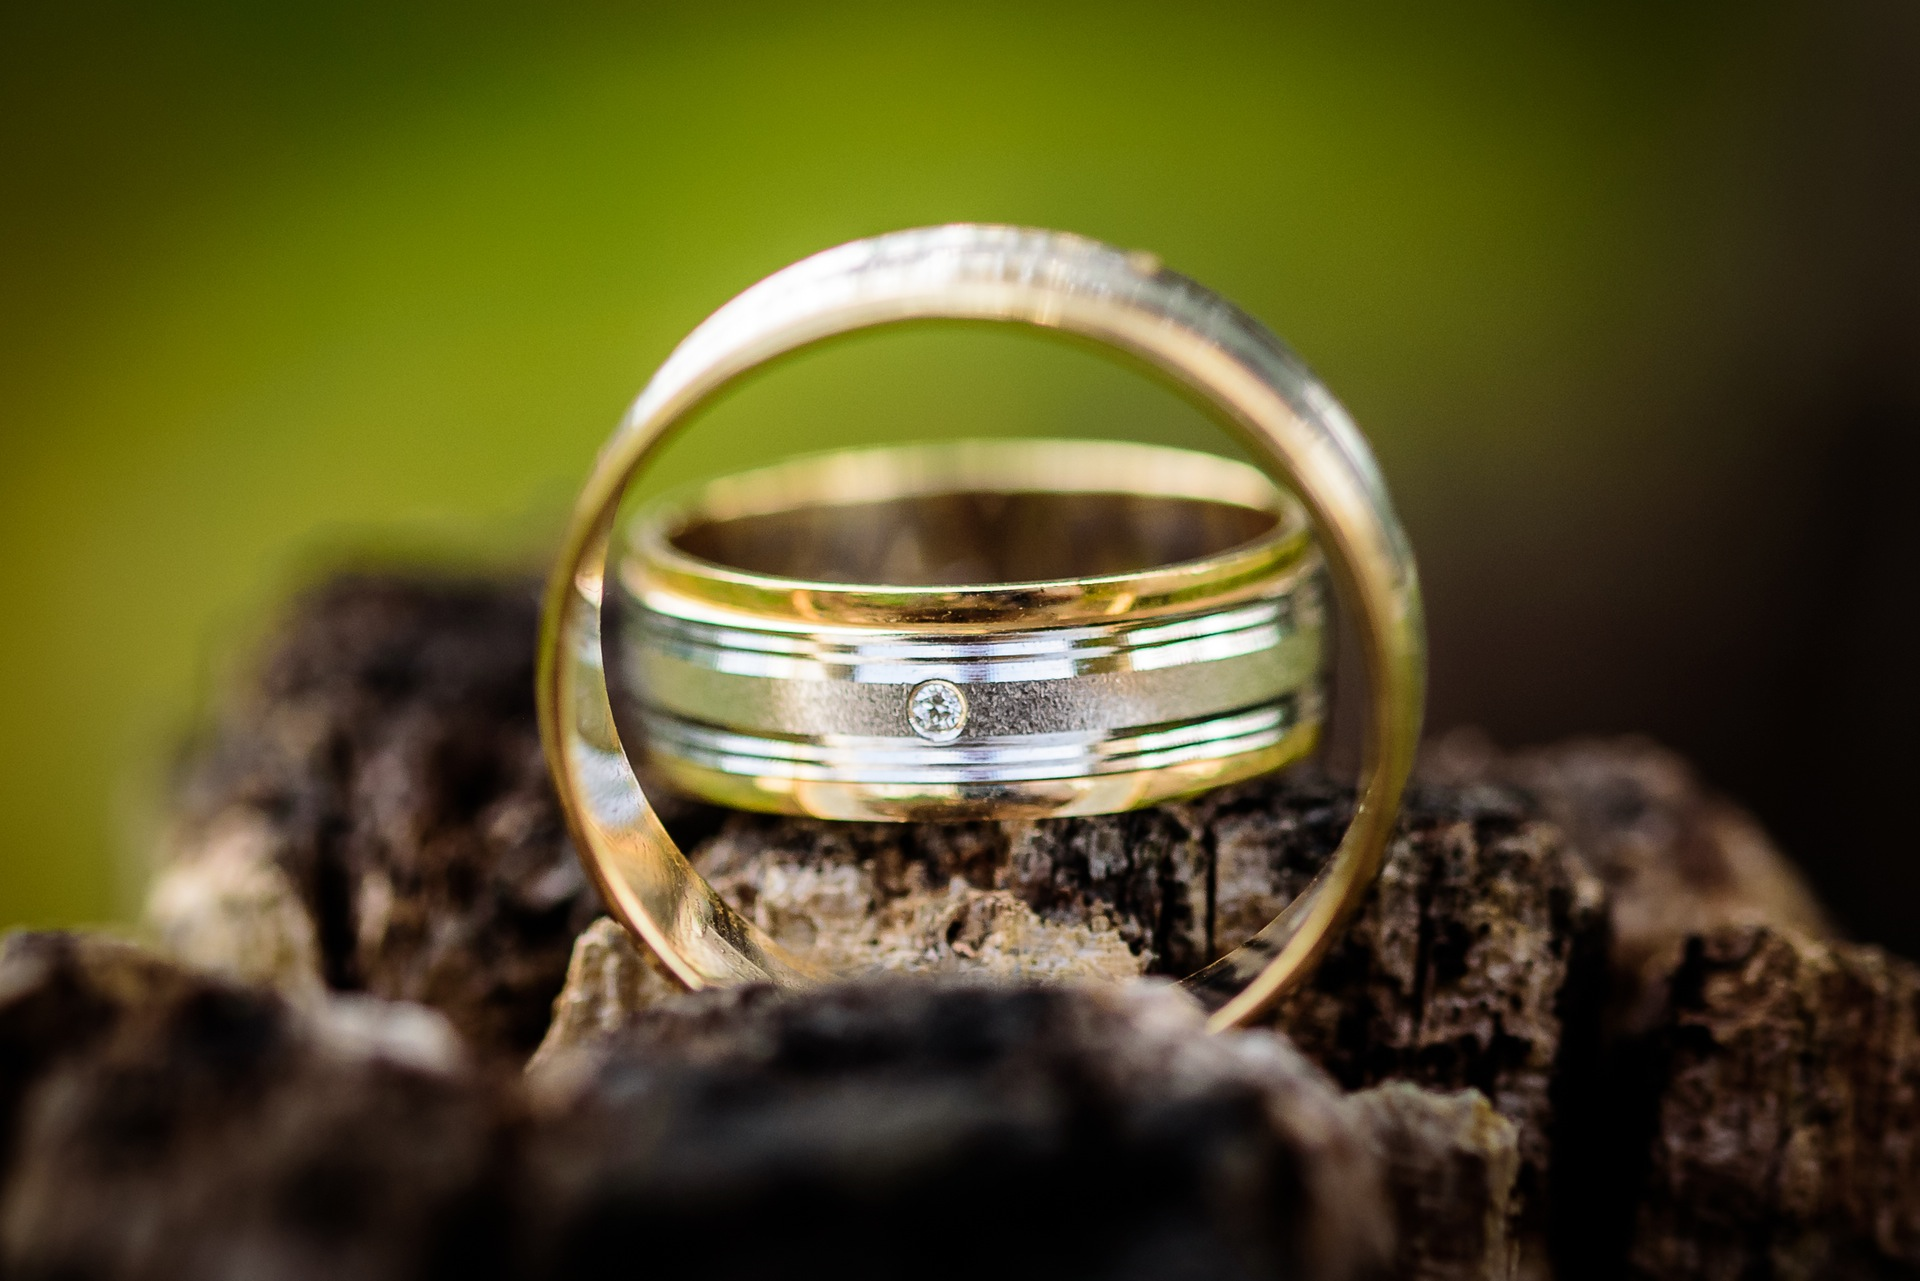 Flush : A flush setting mounts the diamond completely within the ring leaving the face flush with the ring. This very secure setting is perfect for wedding bands and active individuals.